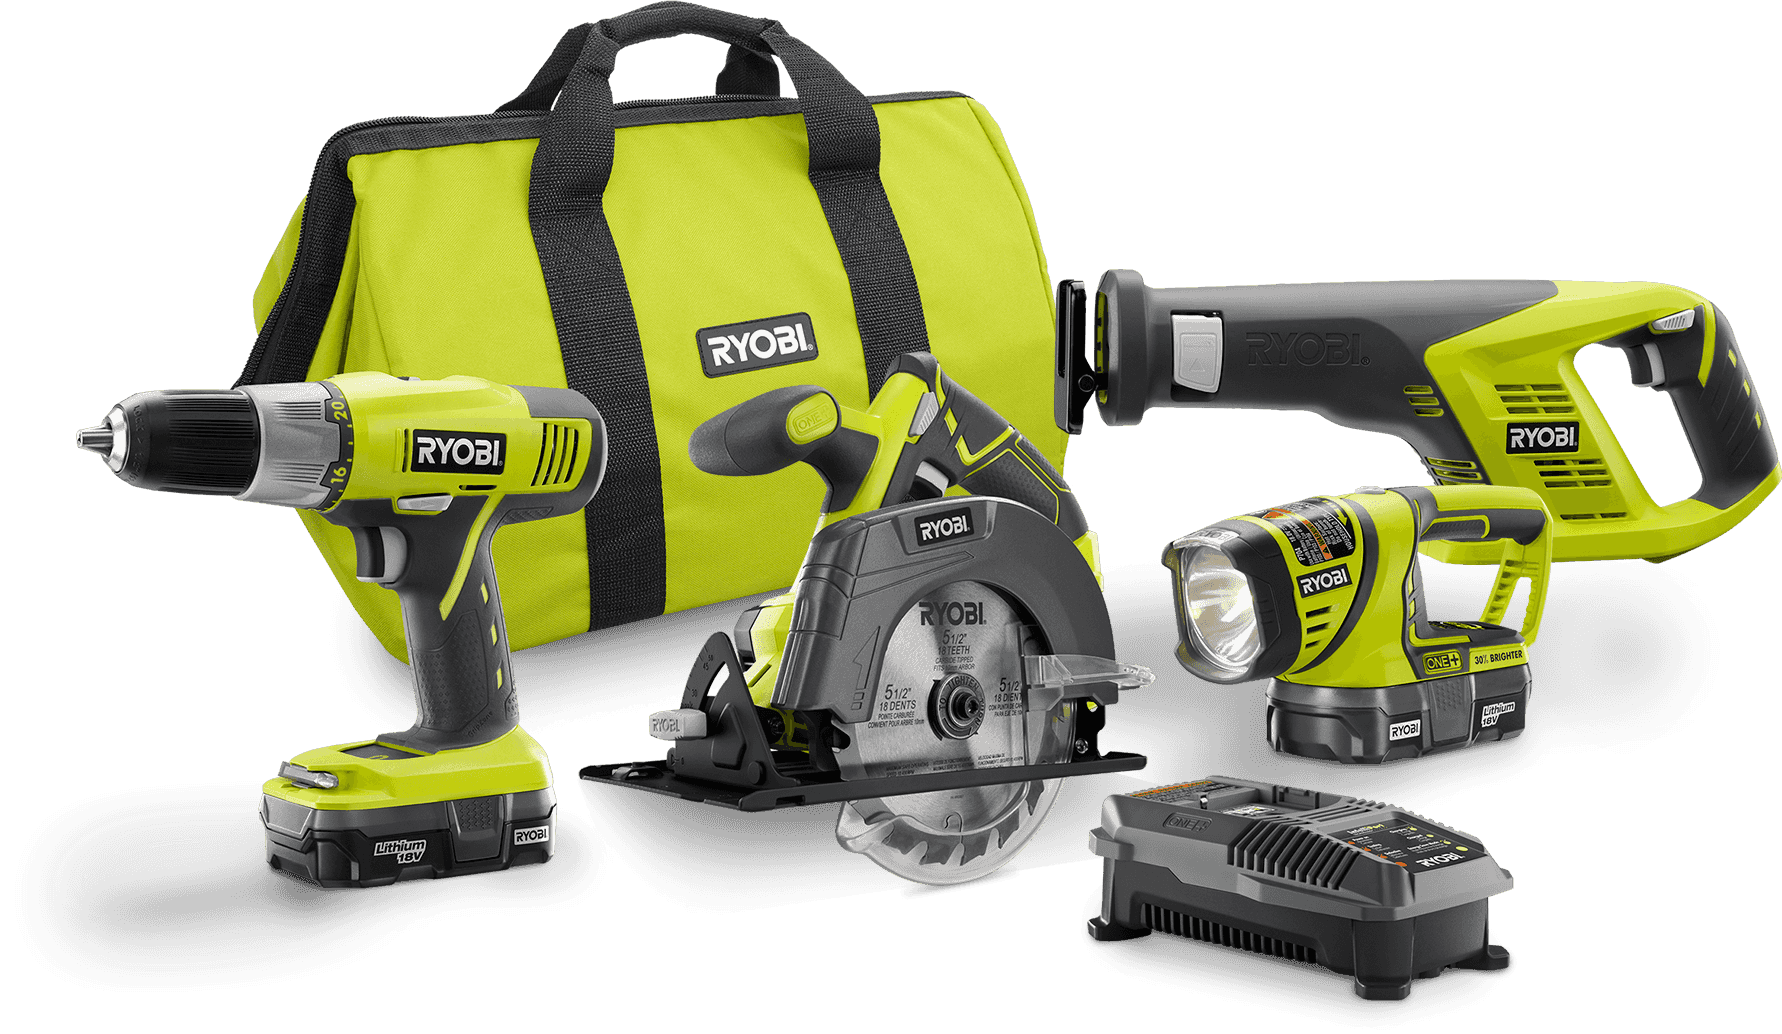 Terrific Current Offerings  Ryobi Tools With Fetching  With Endearing Formosa Gardens Villas Also Garden Buildings Uk In Addition Gardeners Weather Forecast And Garden Venues Cape Town As Well As Jade Garden Peterborough Menu Additionally Stone Garden Table And Chairs From Ryobitoolscom With   Fetching Current Offerings  Ryobi Tools With Endearing  And Terrific Formosa Gardens Villas Also Garden Buildings Uk In Addition Gardeners Weather Forecast From Ryobitoolscom